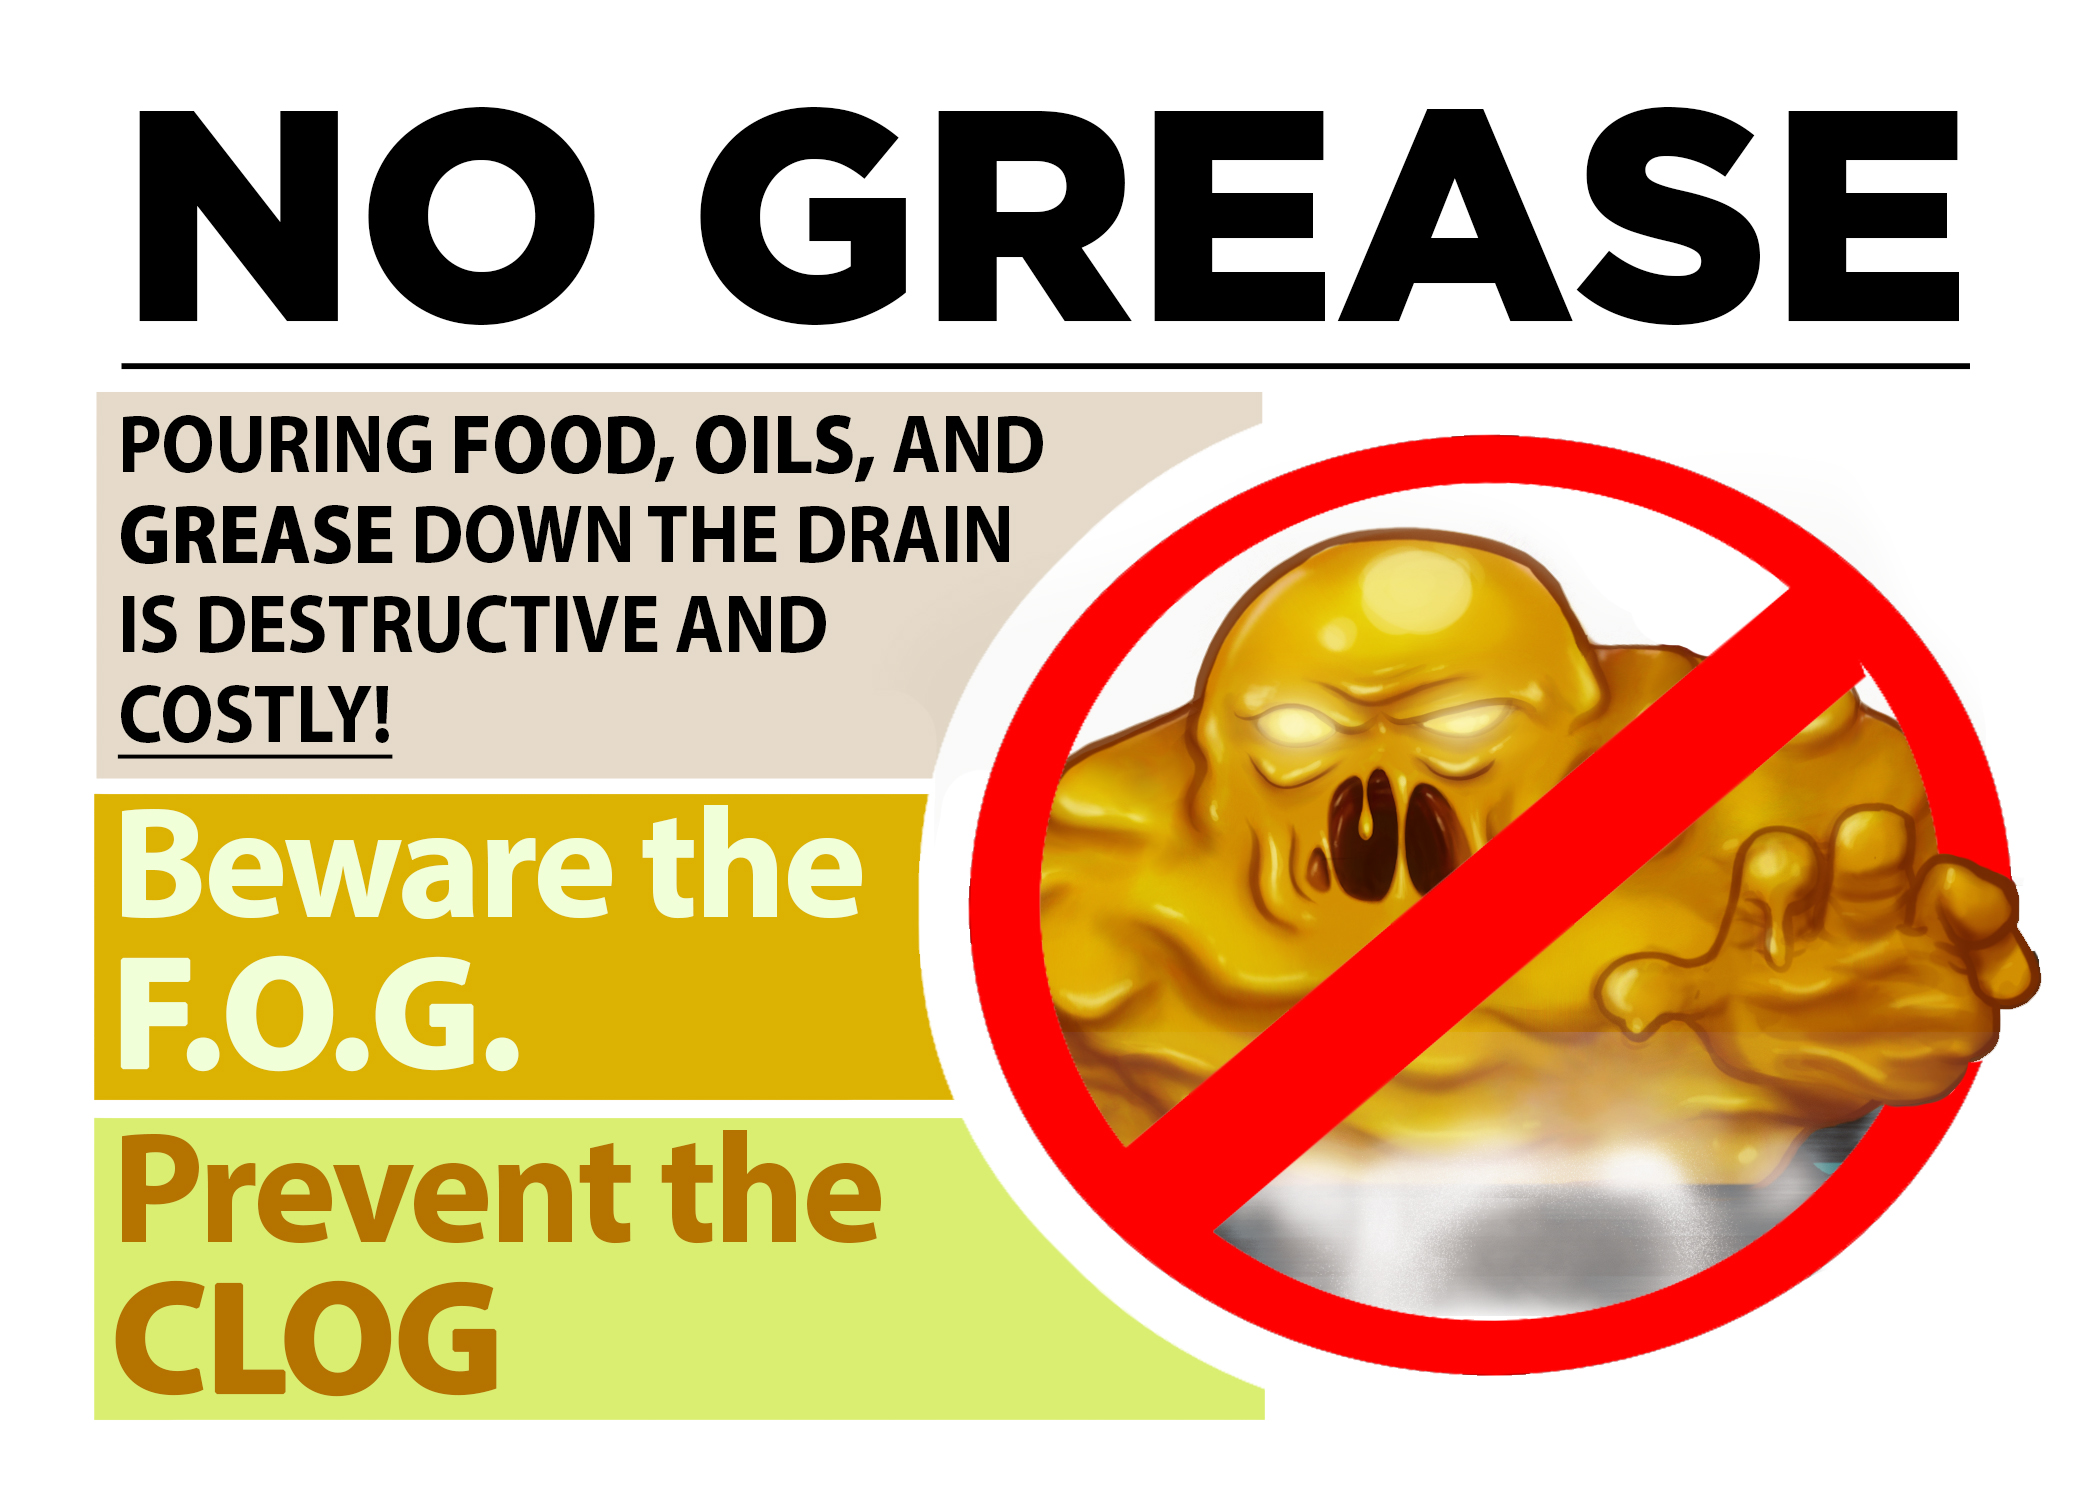 Village of Ruidoso grease and fats recycling program